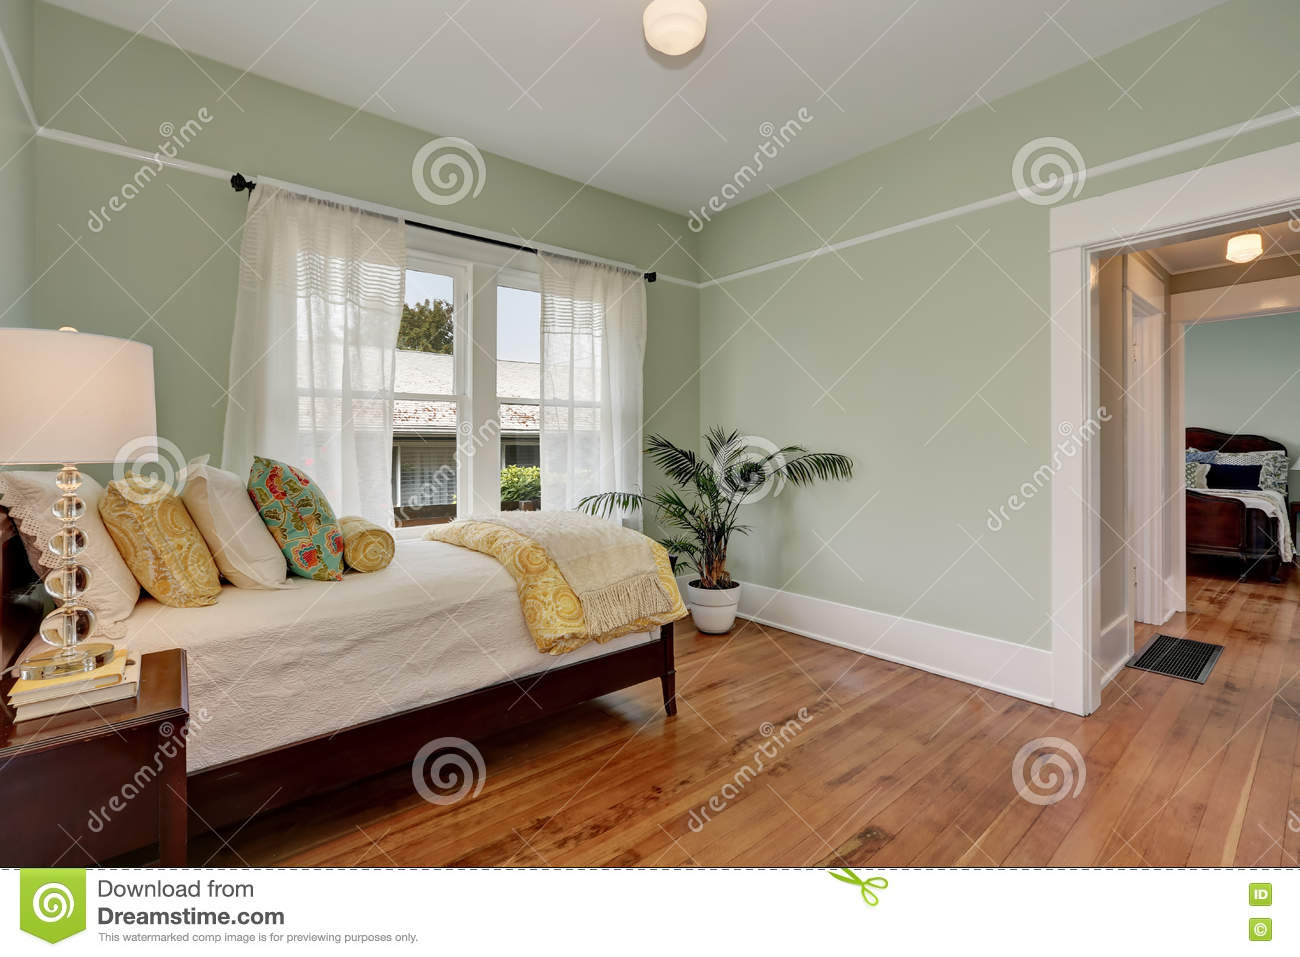 Kids Bedroom House pastel green walls in kids bedroom. house interior stock photo